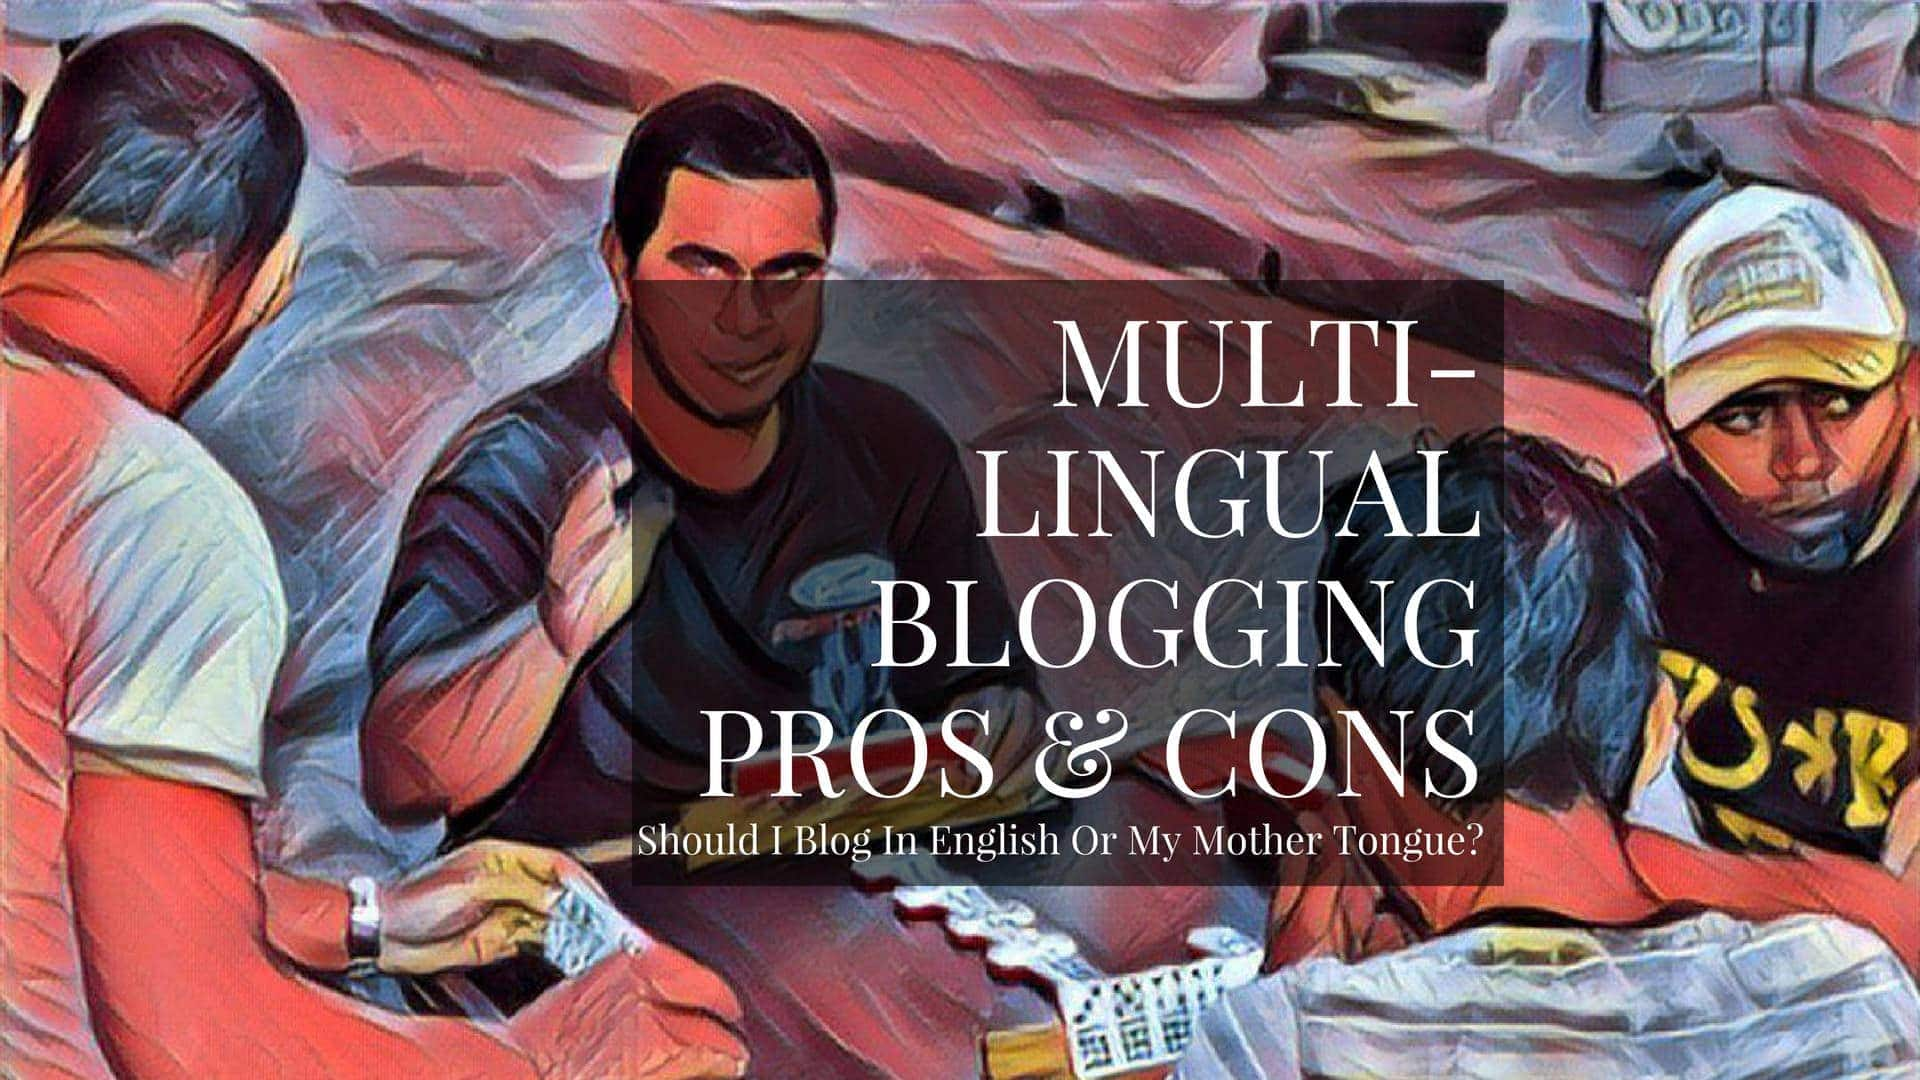 If you are a person with English as your second language, you might be wondering if you should write your blog posts in English, or in your own language.